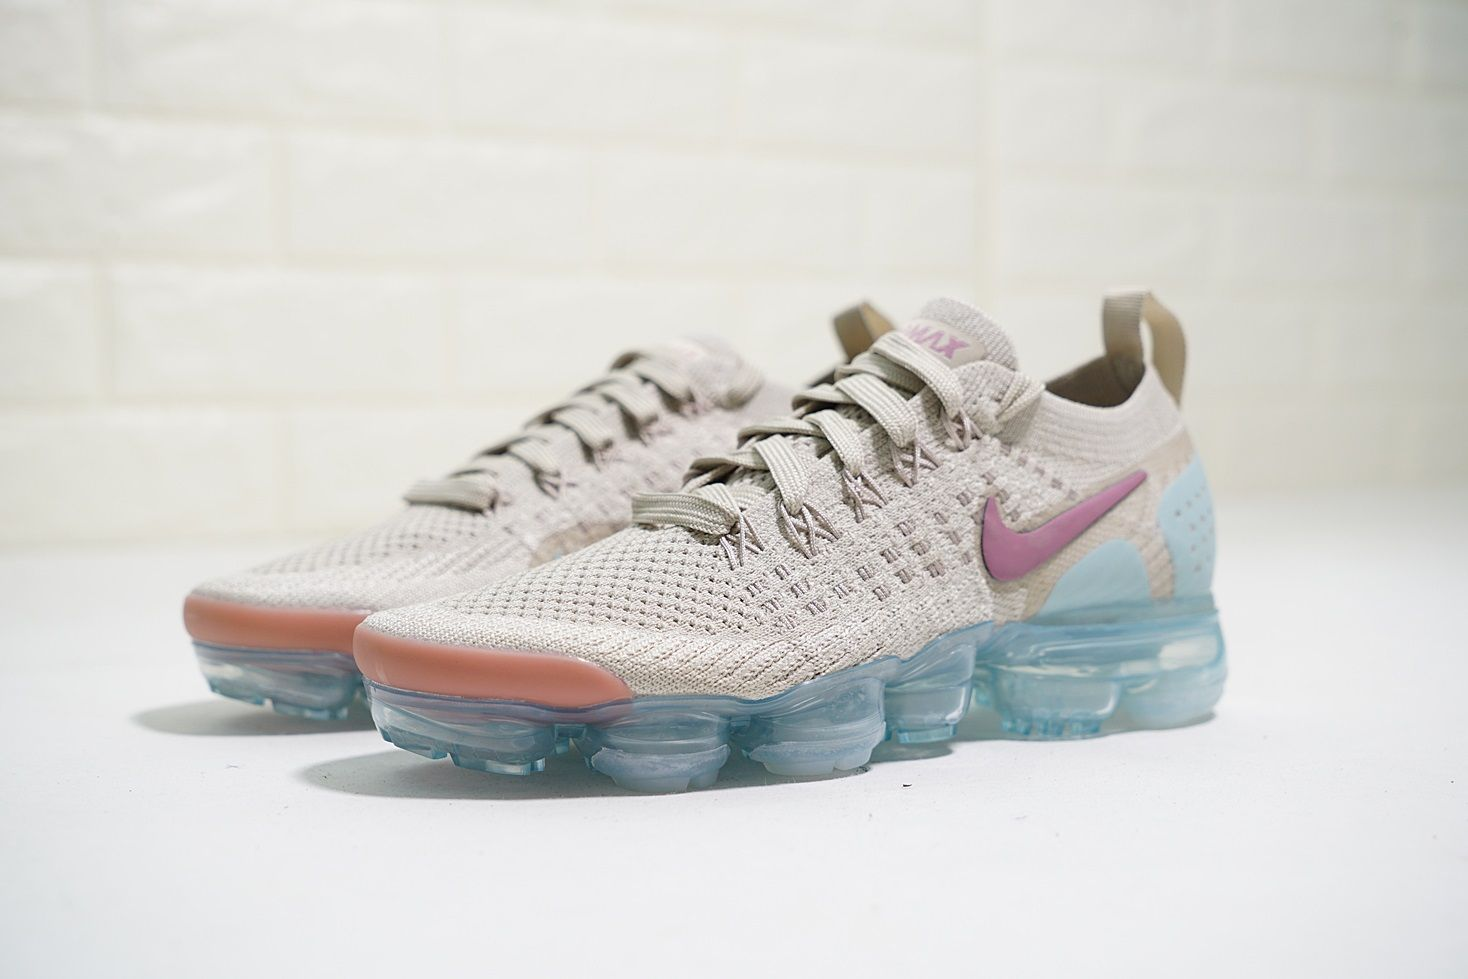 a822f2cc8fc72 NIKE AIR VAPORMAX FLYKNIT 2 KHAKI LIGHT BLUE PURPLE 942843 203 ...